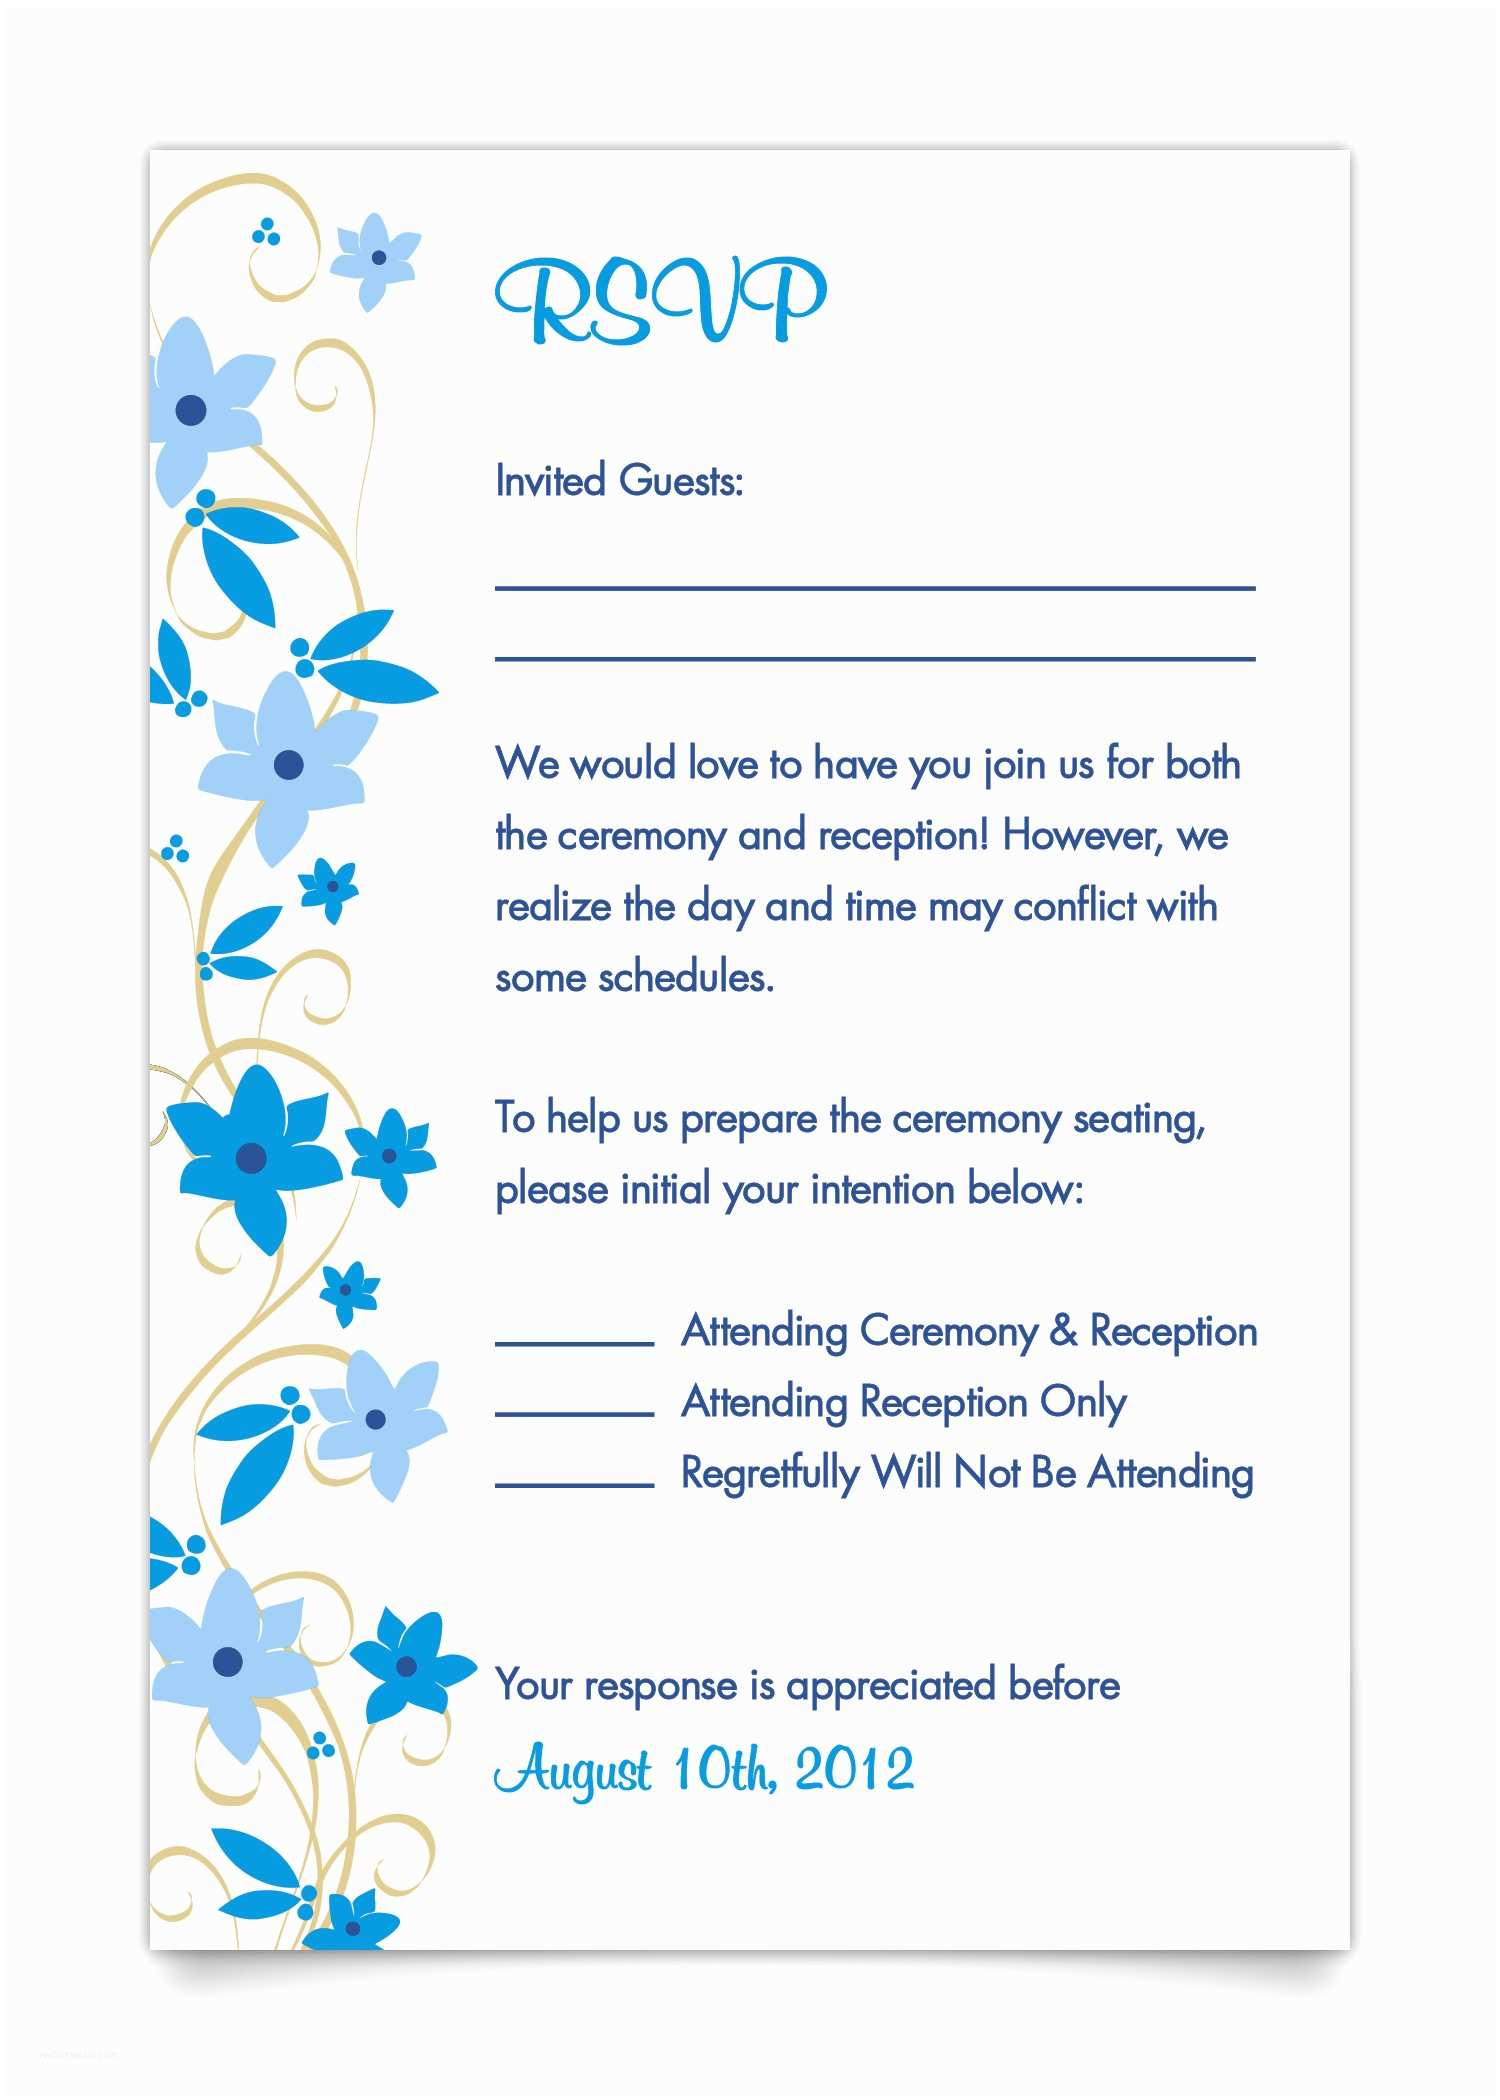 How to Rsvp to A Wedding Invitation Adults Ly Wedding Wordingadults Ly Wedding Wording